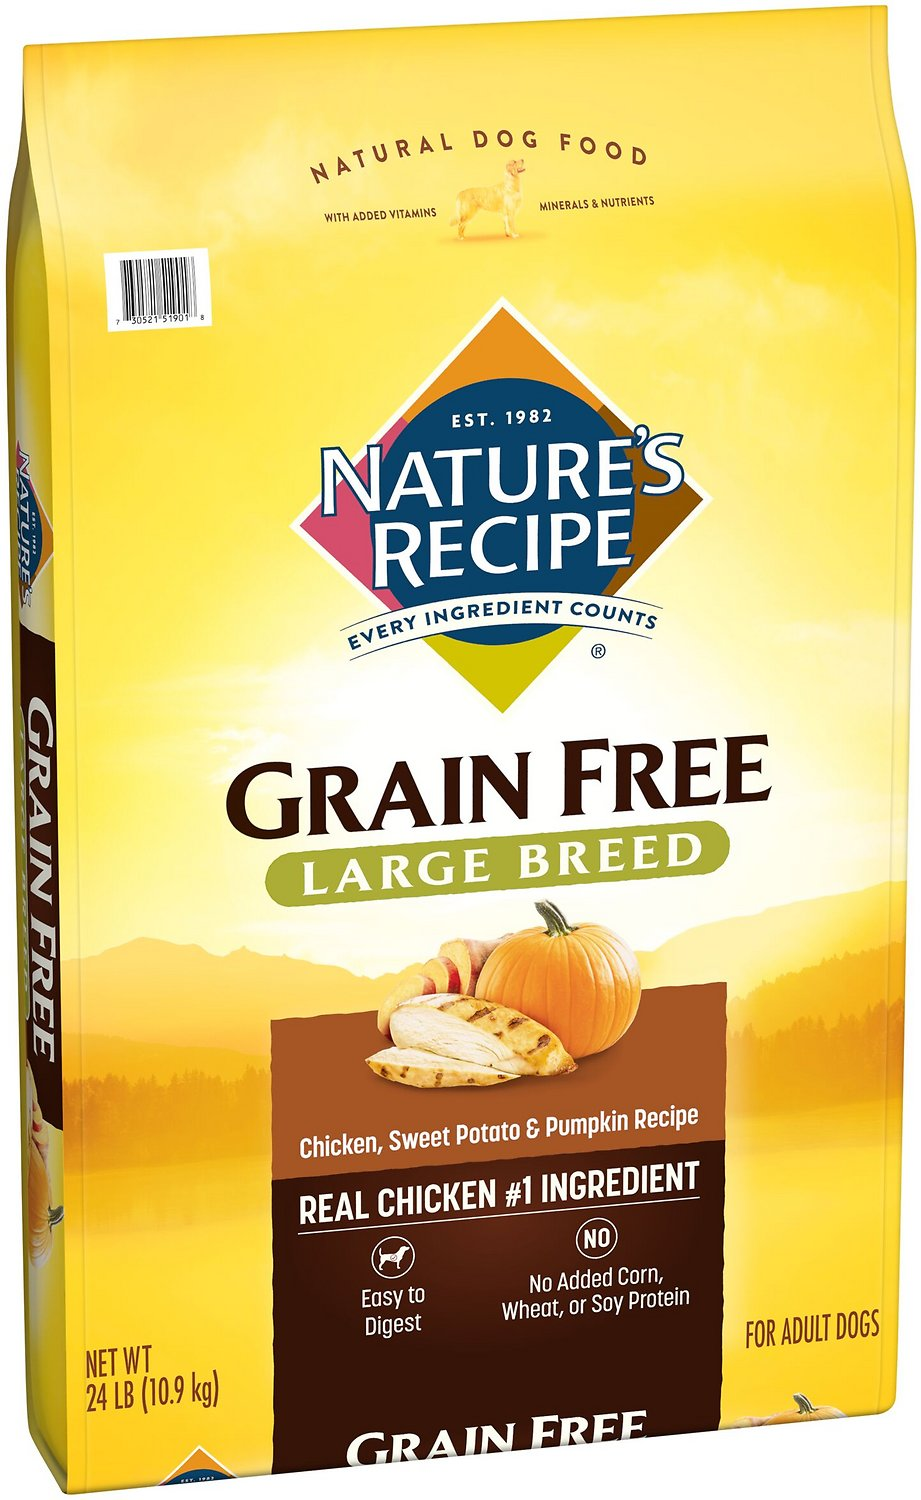 Natures recipe large breed grain free chicken sweet potato natures recipe large breed grain free chicken sweet potato pumpkin recipe dry dog food 24 lb bag chewy forumfinder Gallery